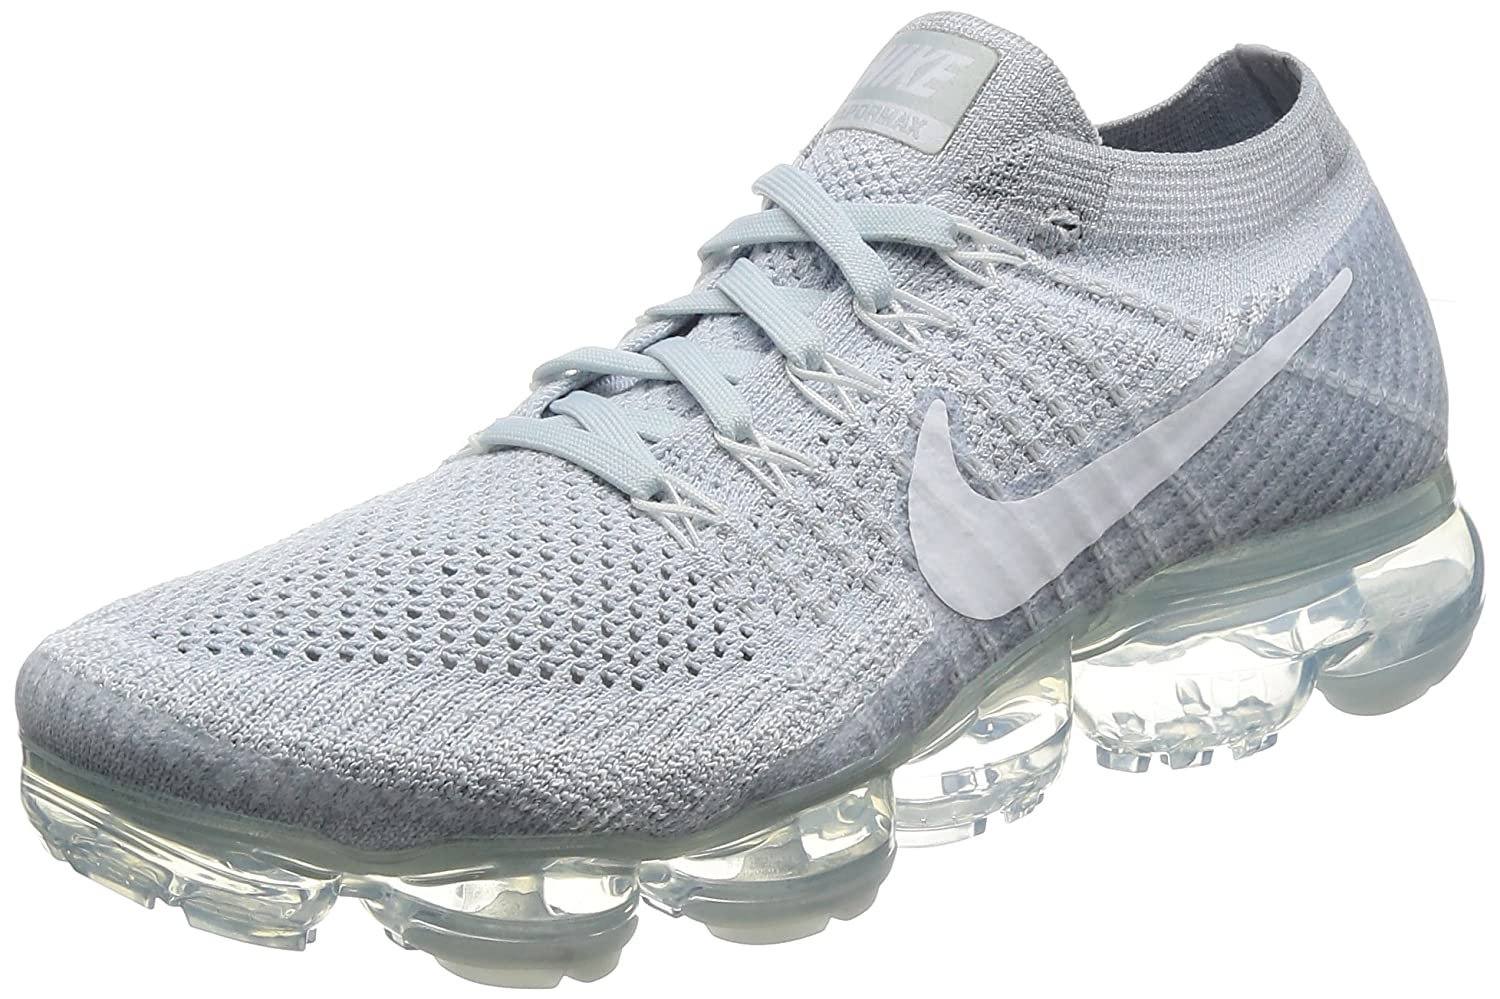 4ee650ea98 Amazon.com | Men's Nike Air Vapormax Flyknit Running Shoe | Fashion Sneakers